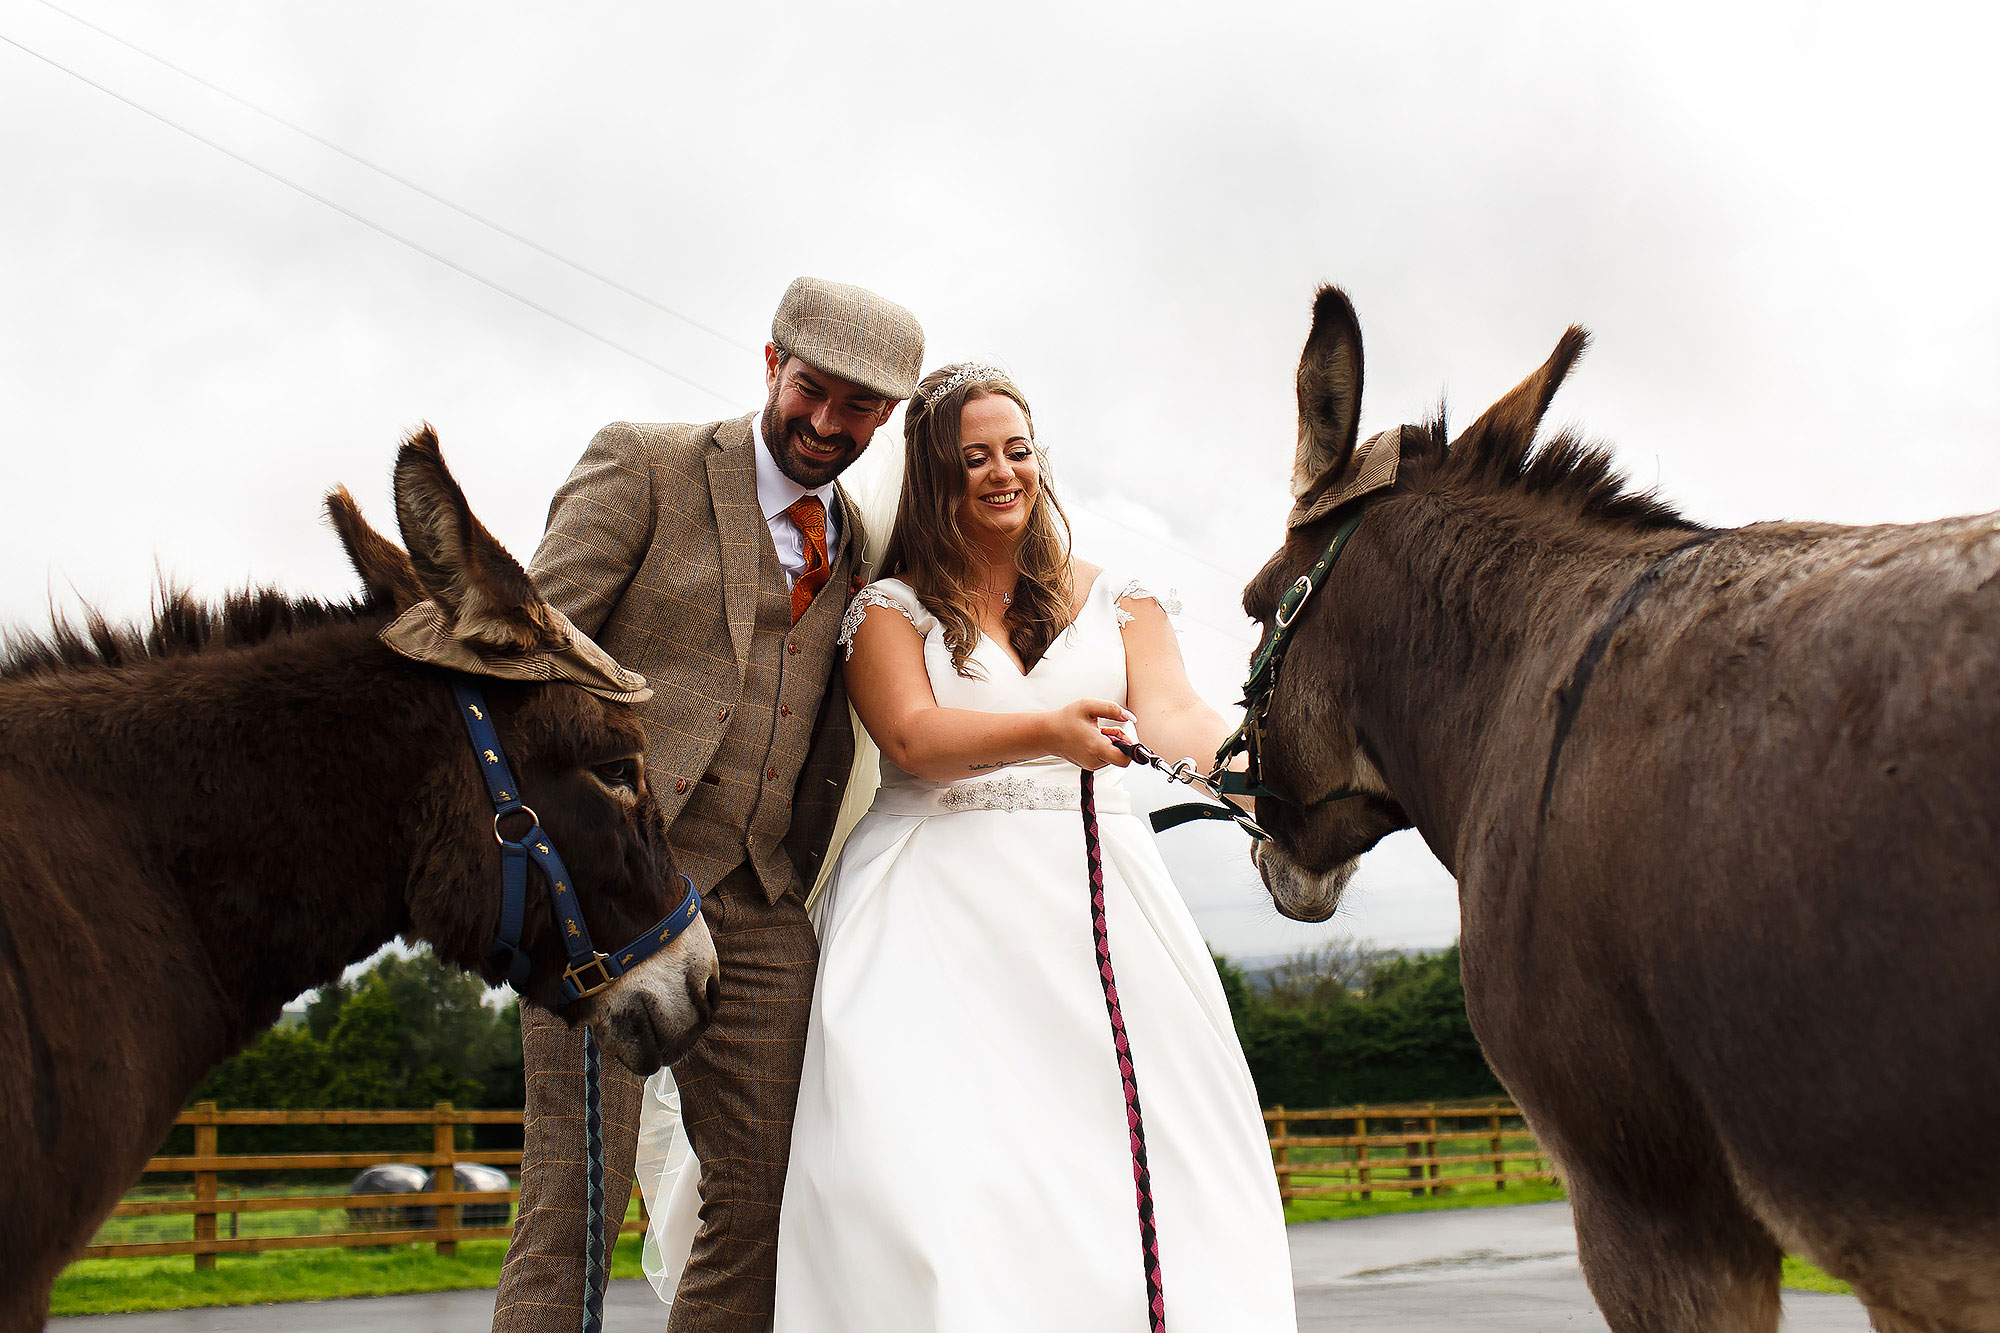 Bride and Groom wearing flat cap holding the donkeys outside the Wellbeing Farm | Wellbeing Farm wedding photographs by Toni Darcy Photography